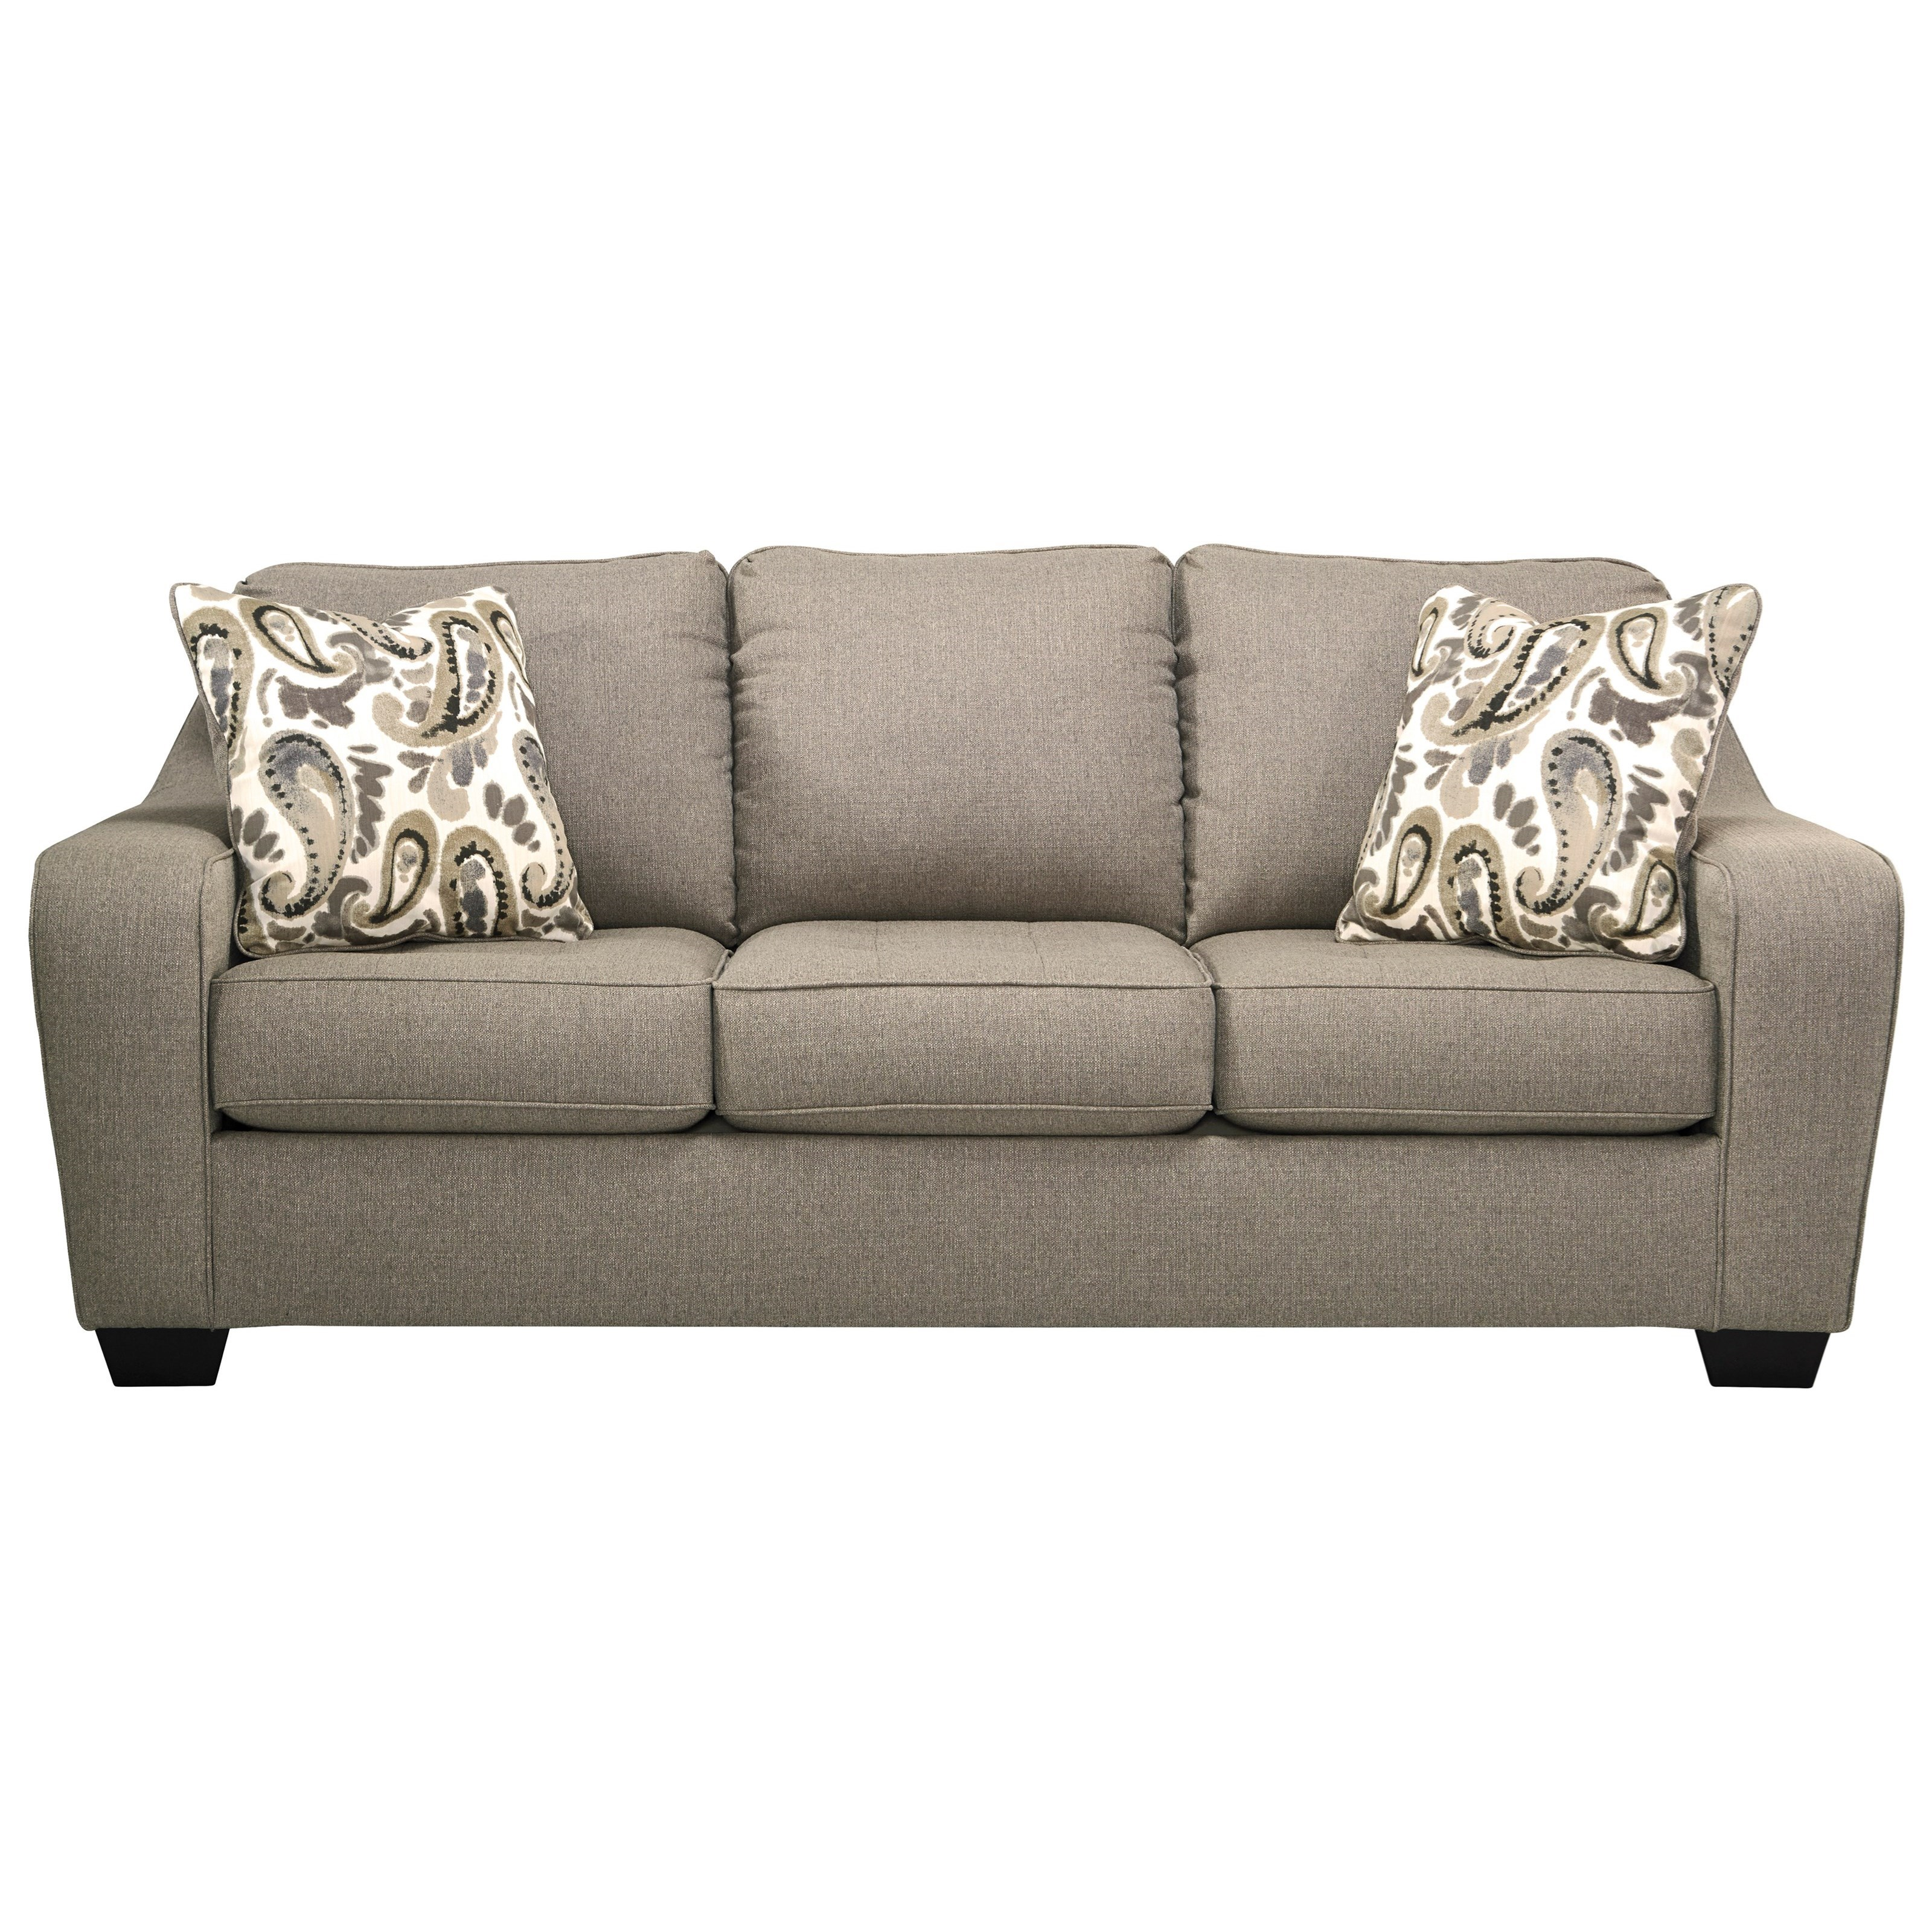 Ashley Furniture Arietta Sofa with Sloping Track Arms Furniture